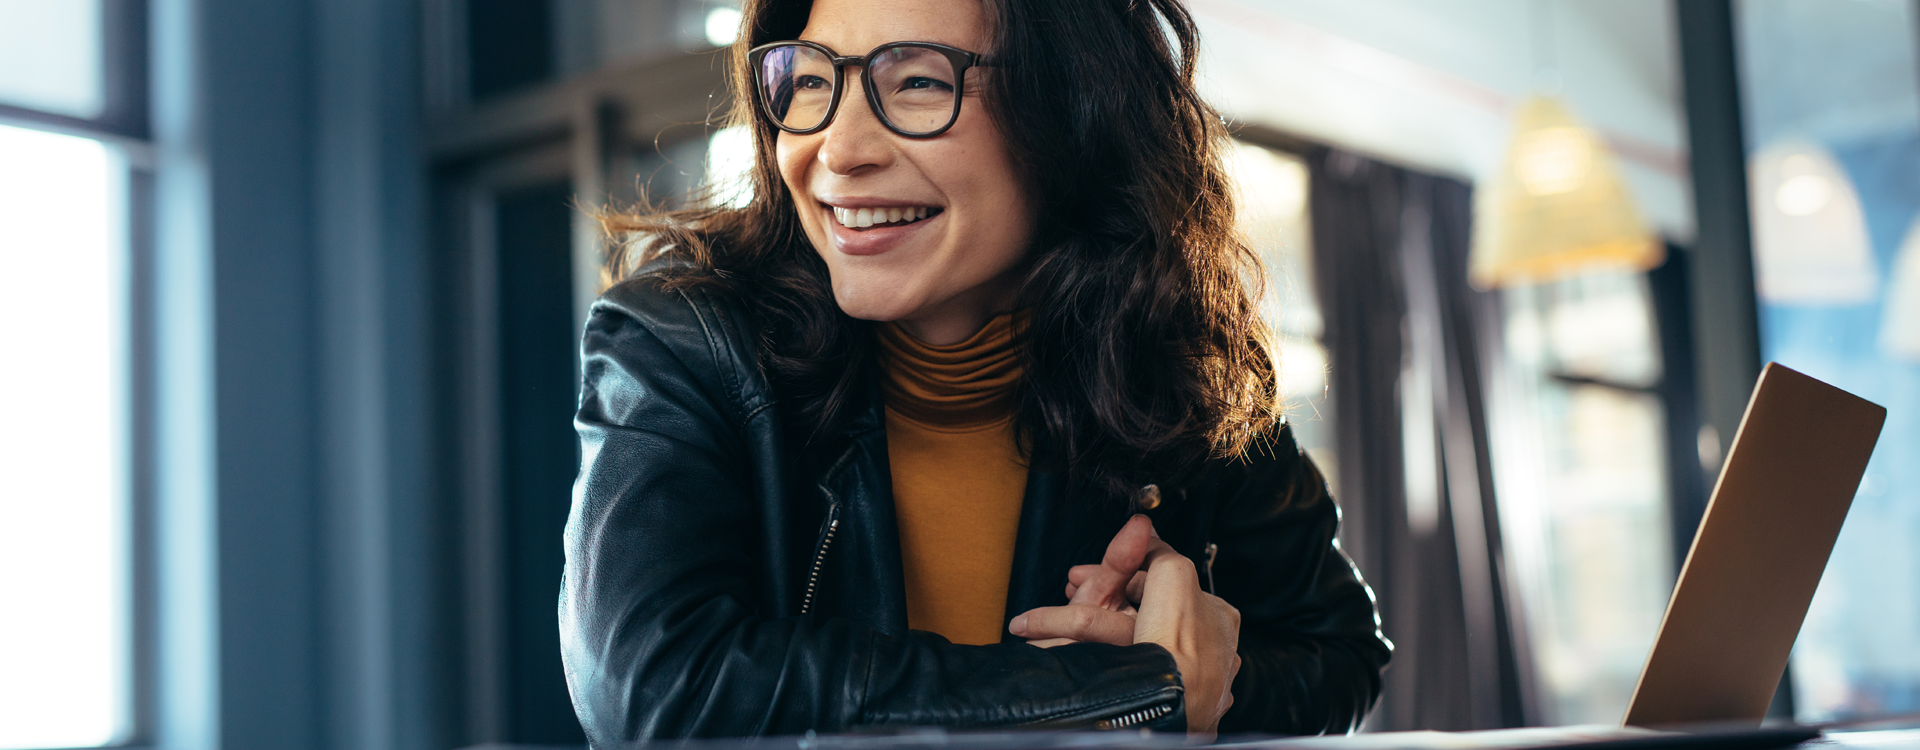 a woman wearing glasses, smiling and working on her laptop